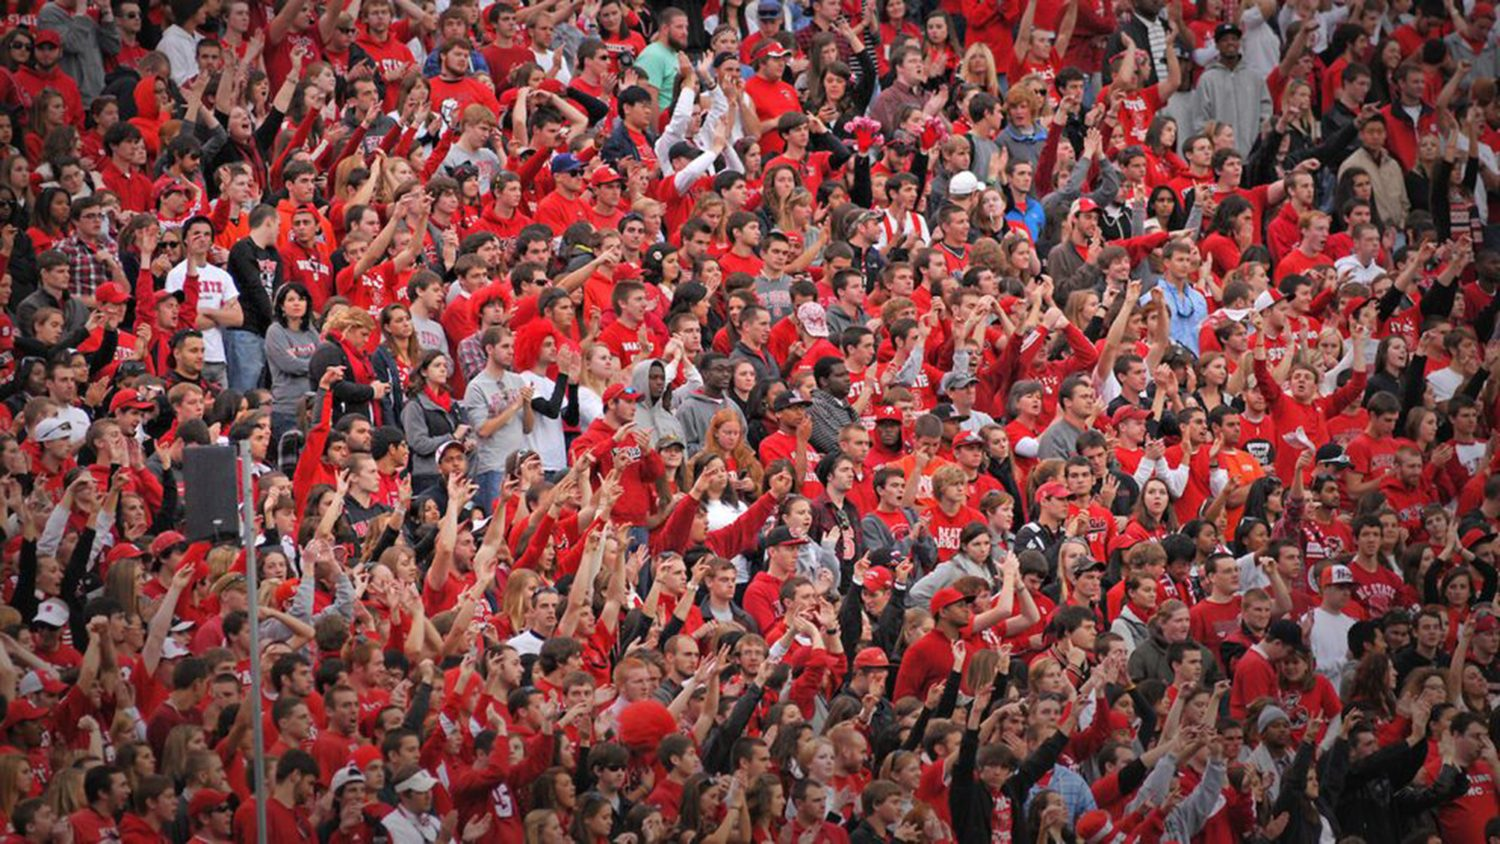 Cheering crowd at an NC State football game.